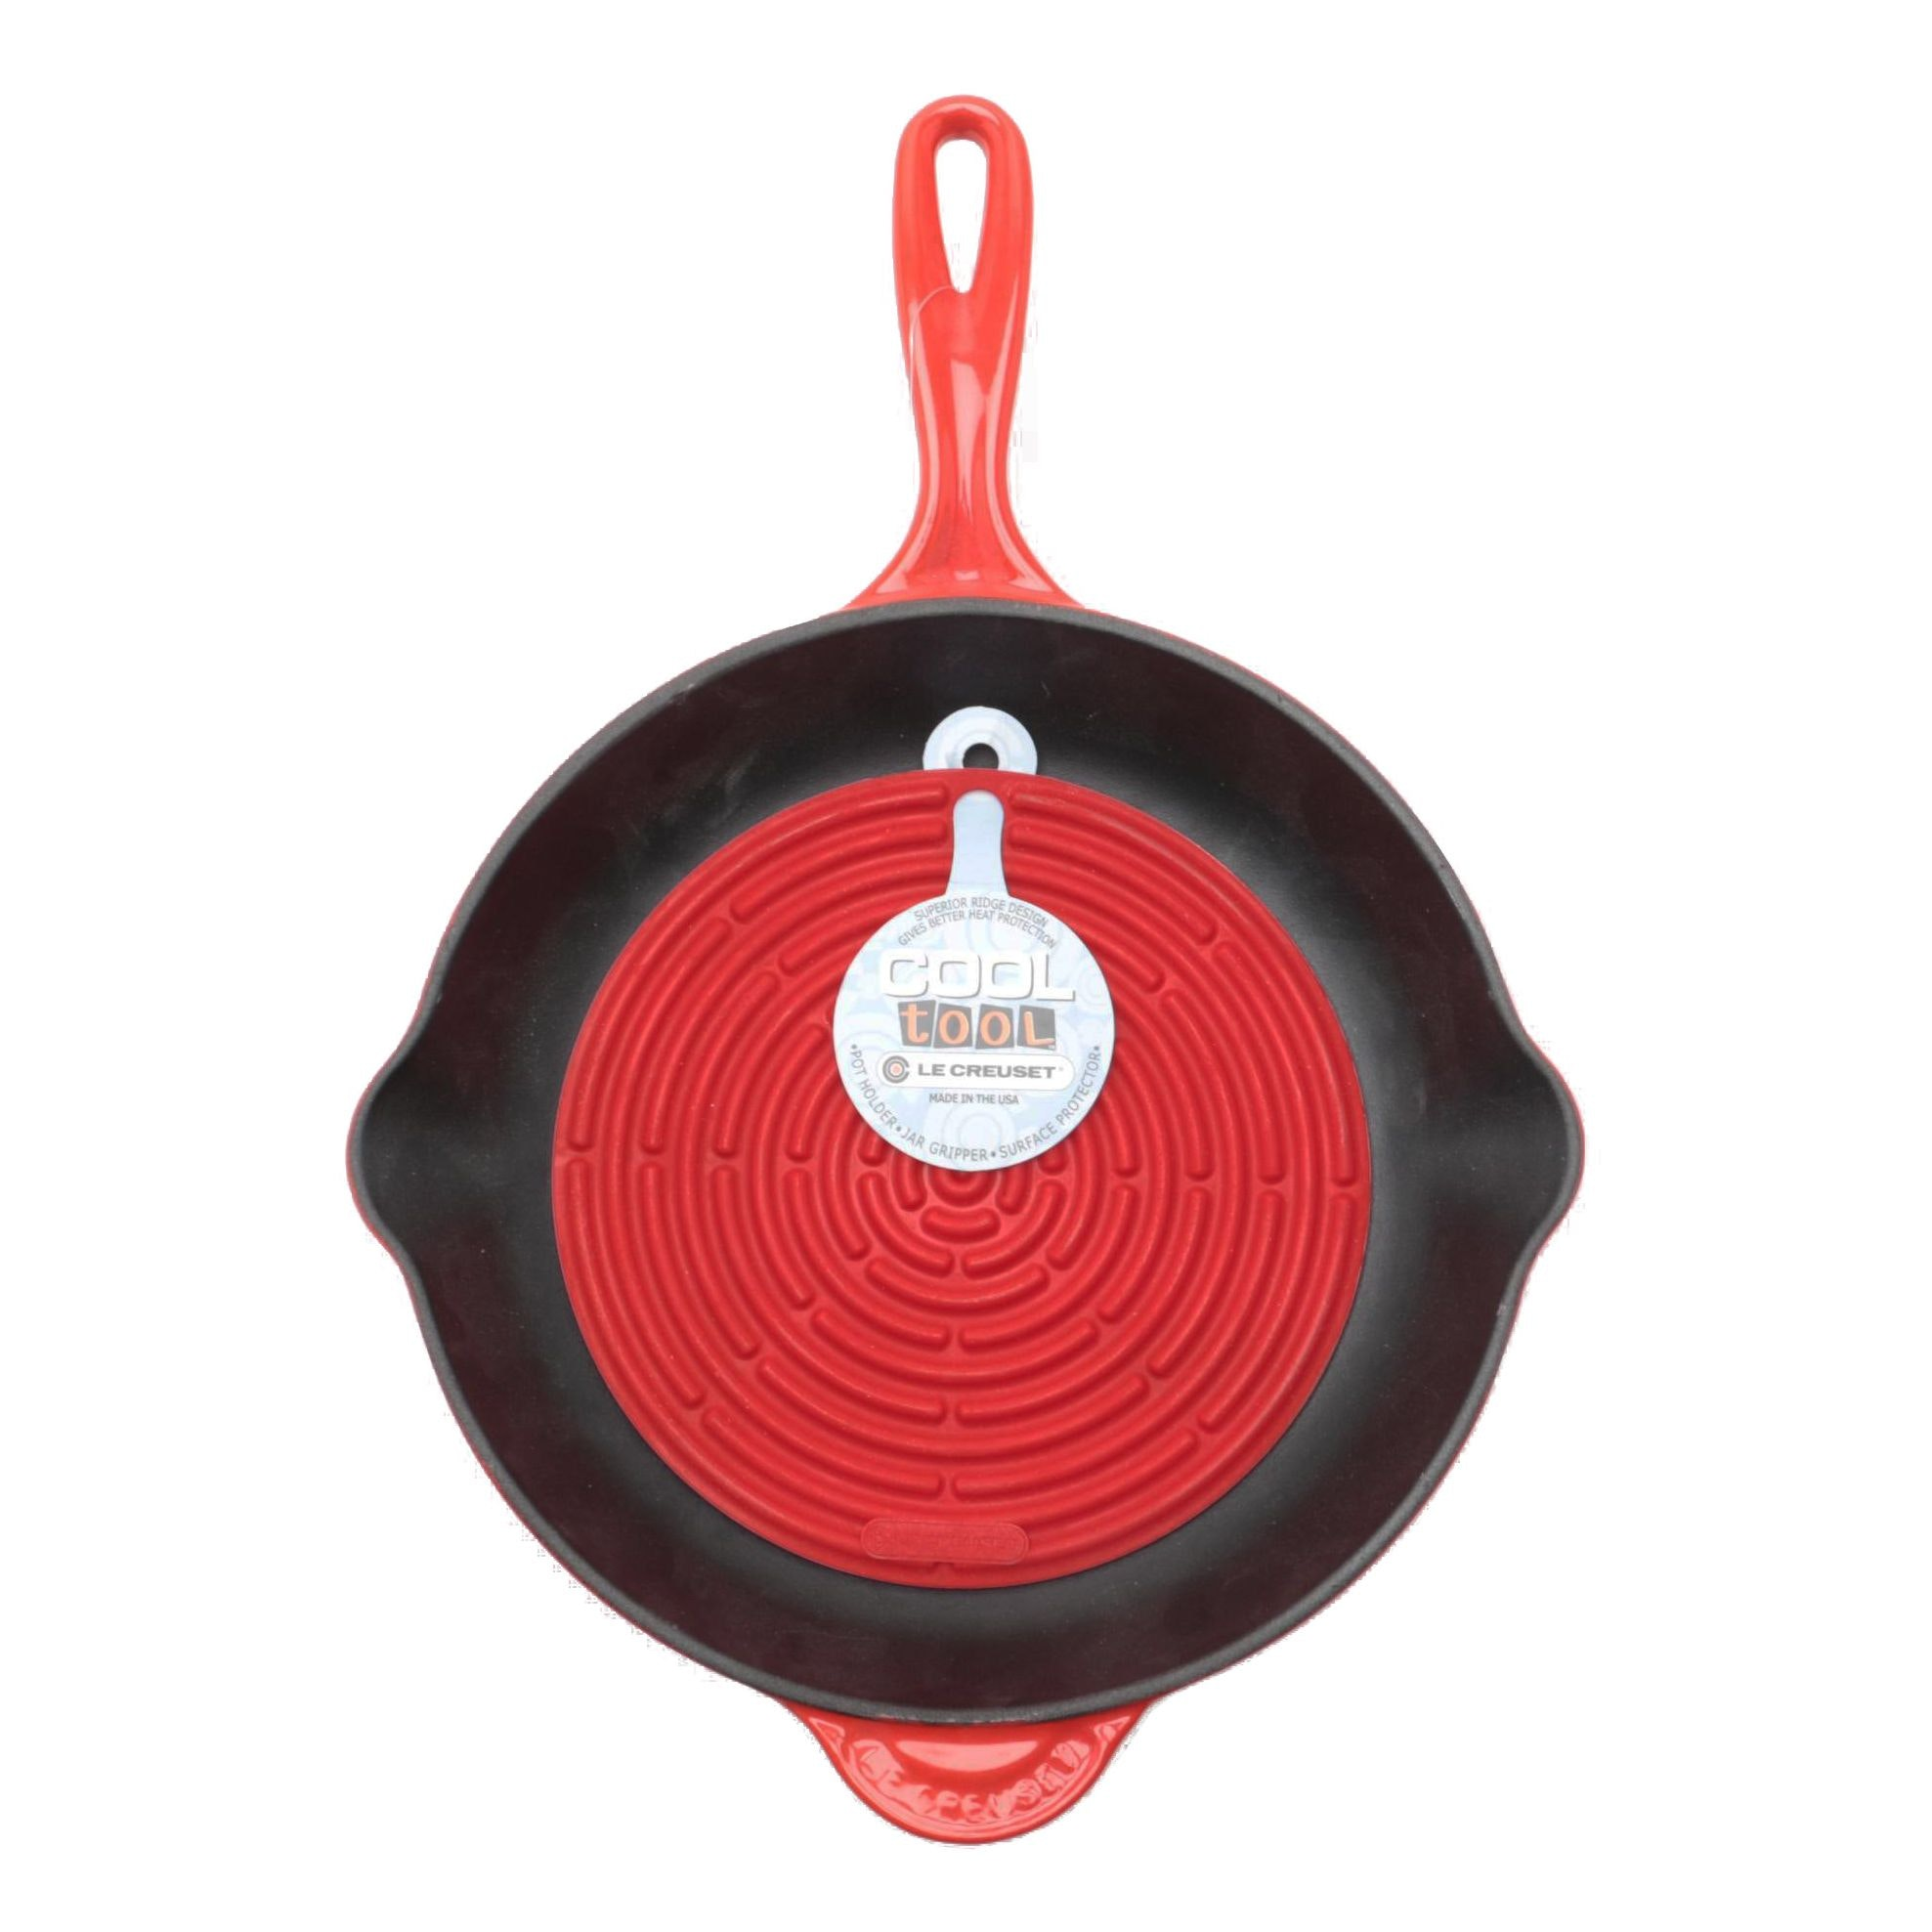 """Le Creuset Enameled Cast Iron Skillet Pan with """"Cool Tool"""" Pot Holder"""